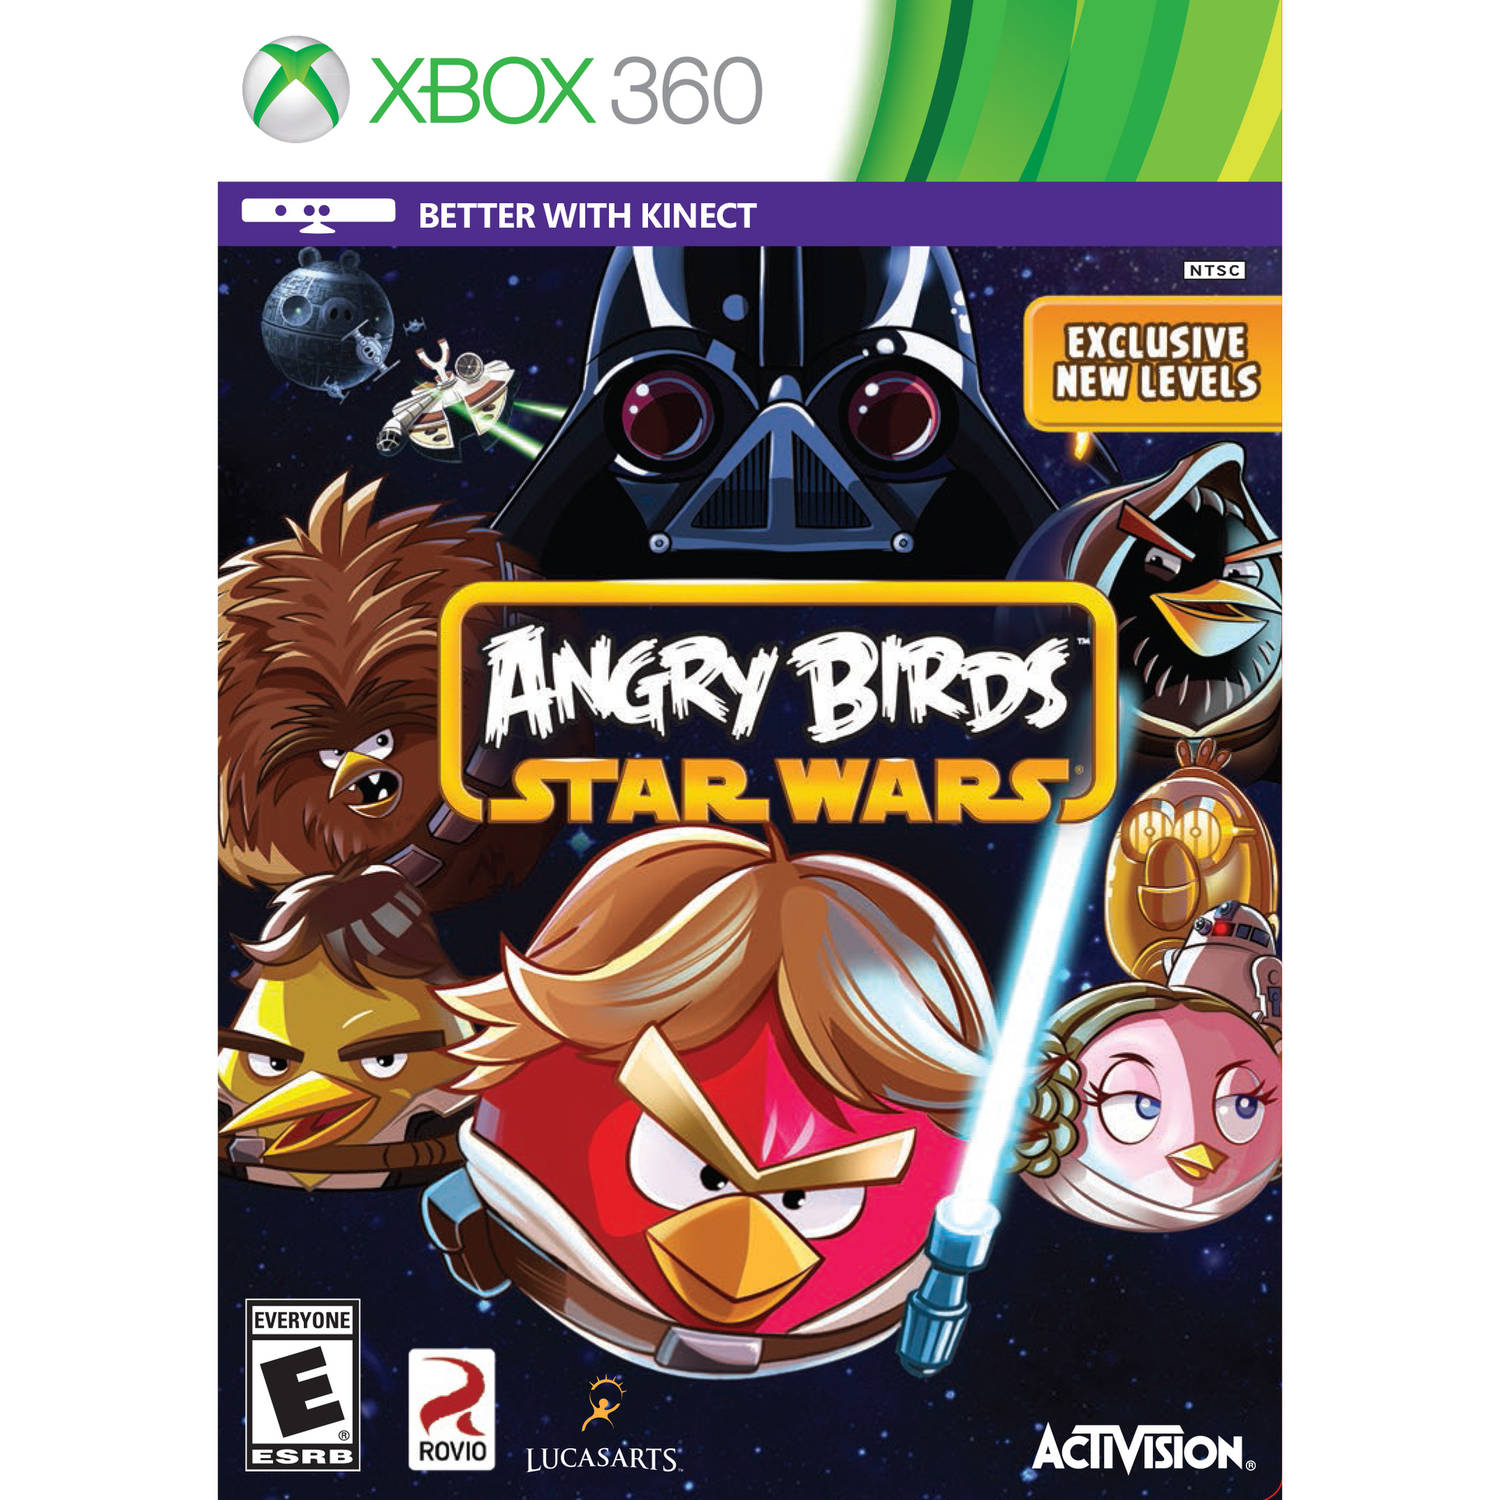 Angry Birds Star Wars (Xbox 360) - Pre-Owned